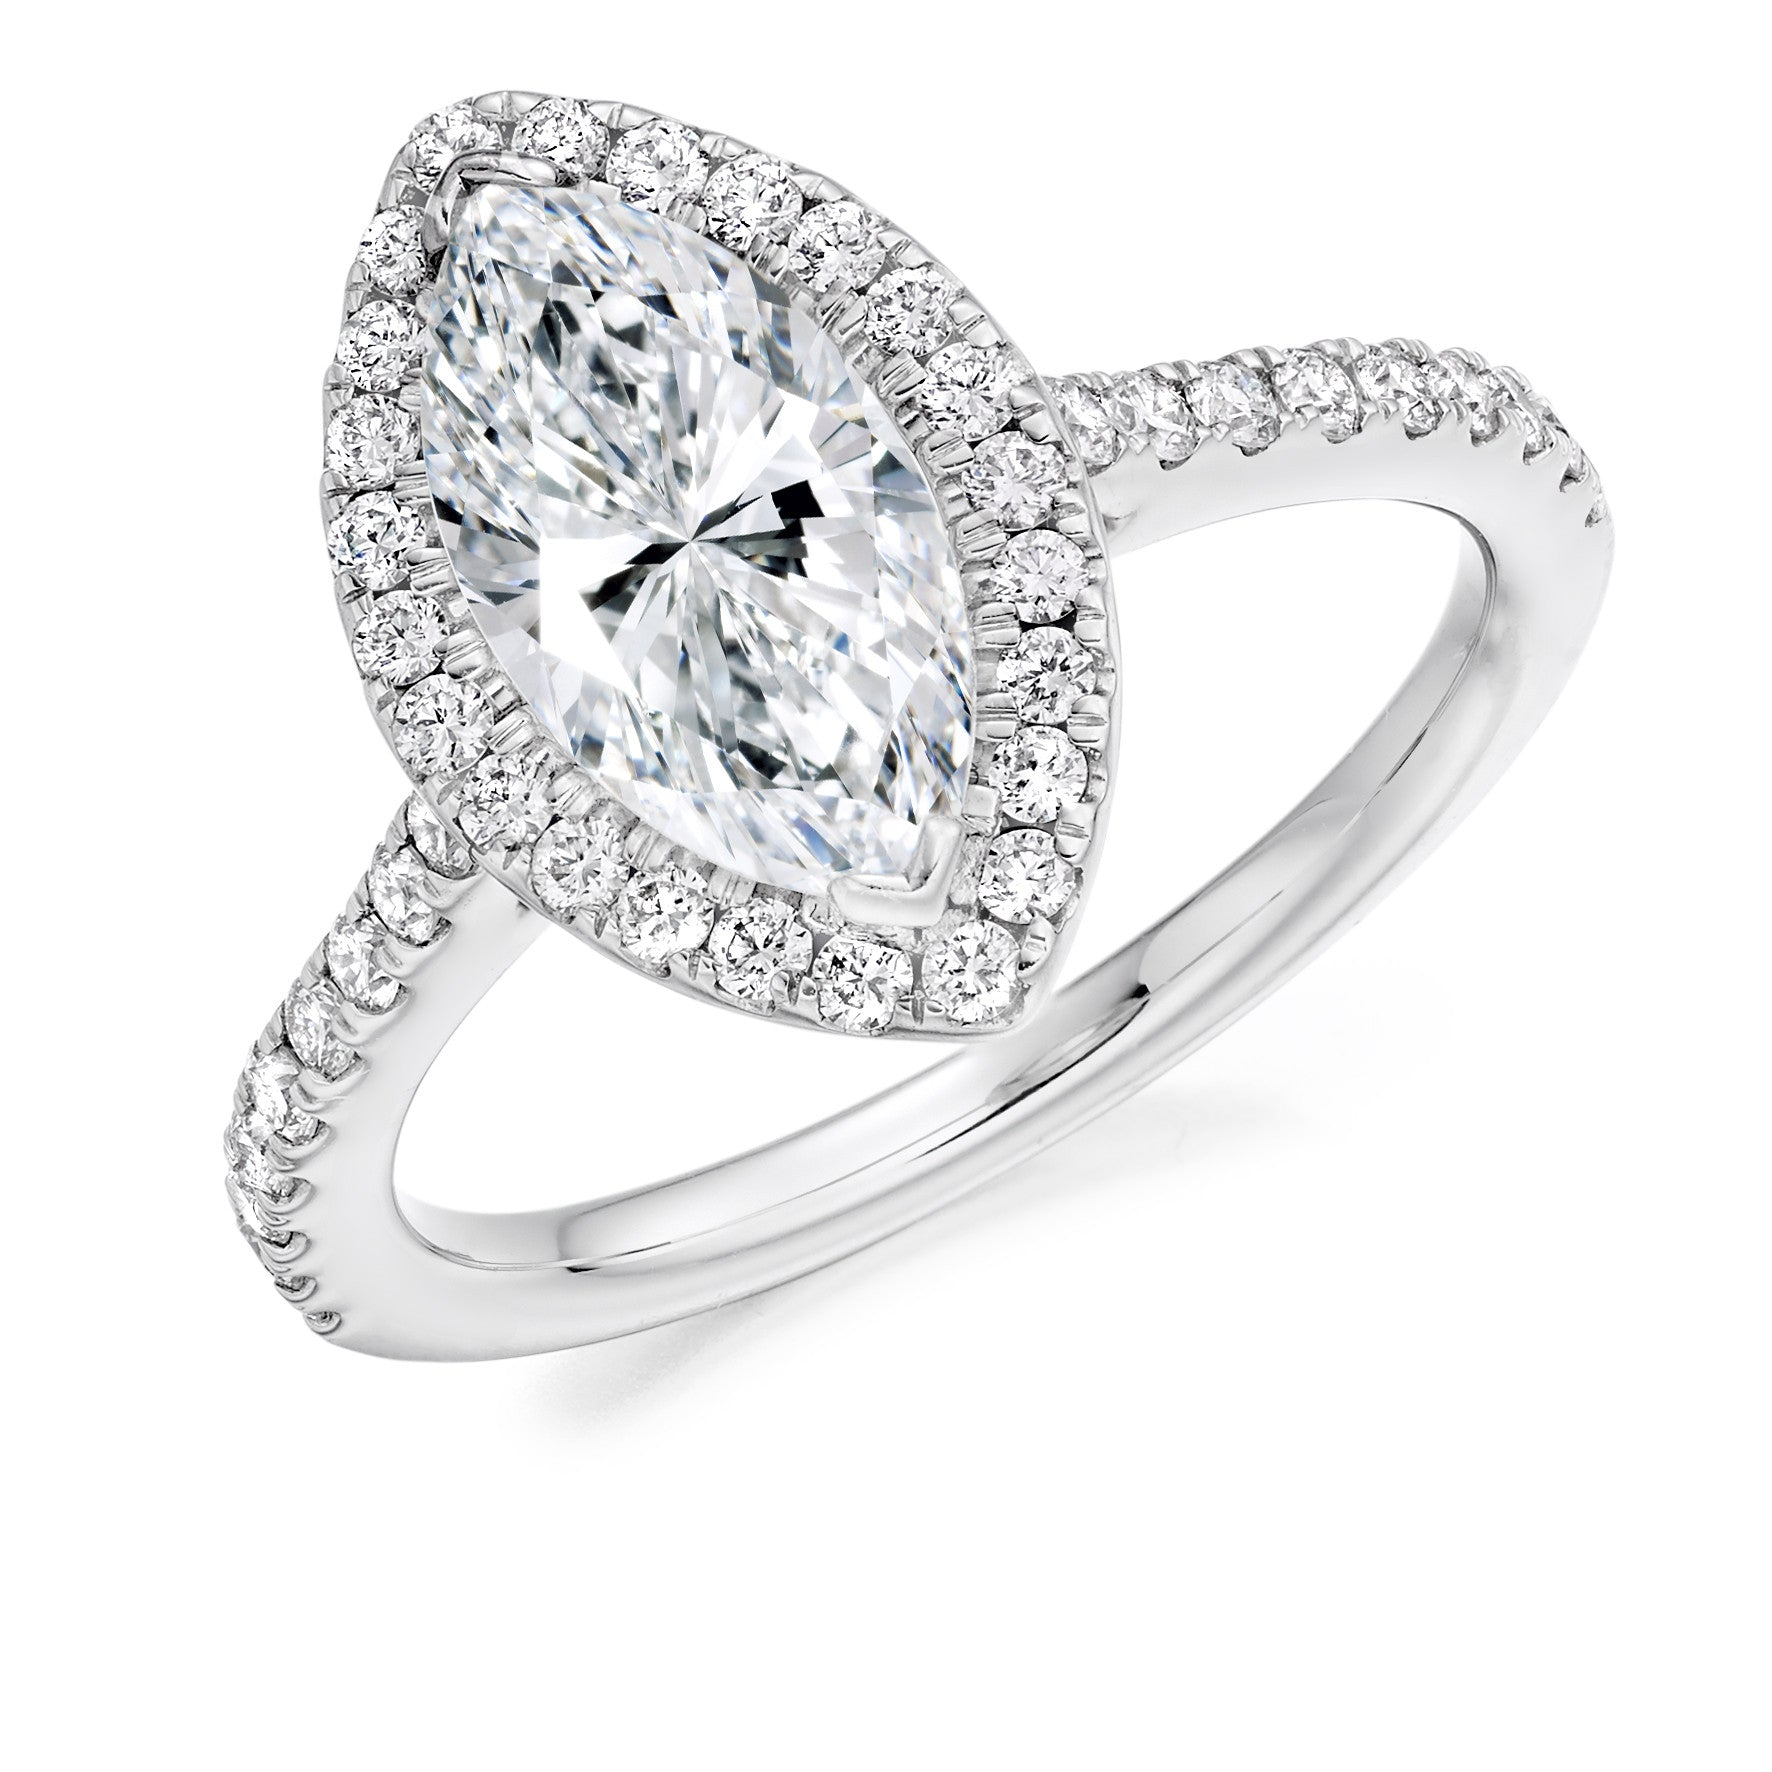 cassandra bridal mamone engagement product capsule diamond cut engagment rings marquise ring